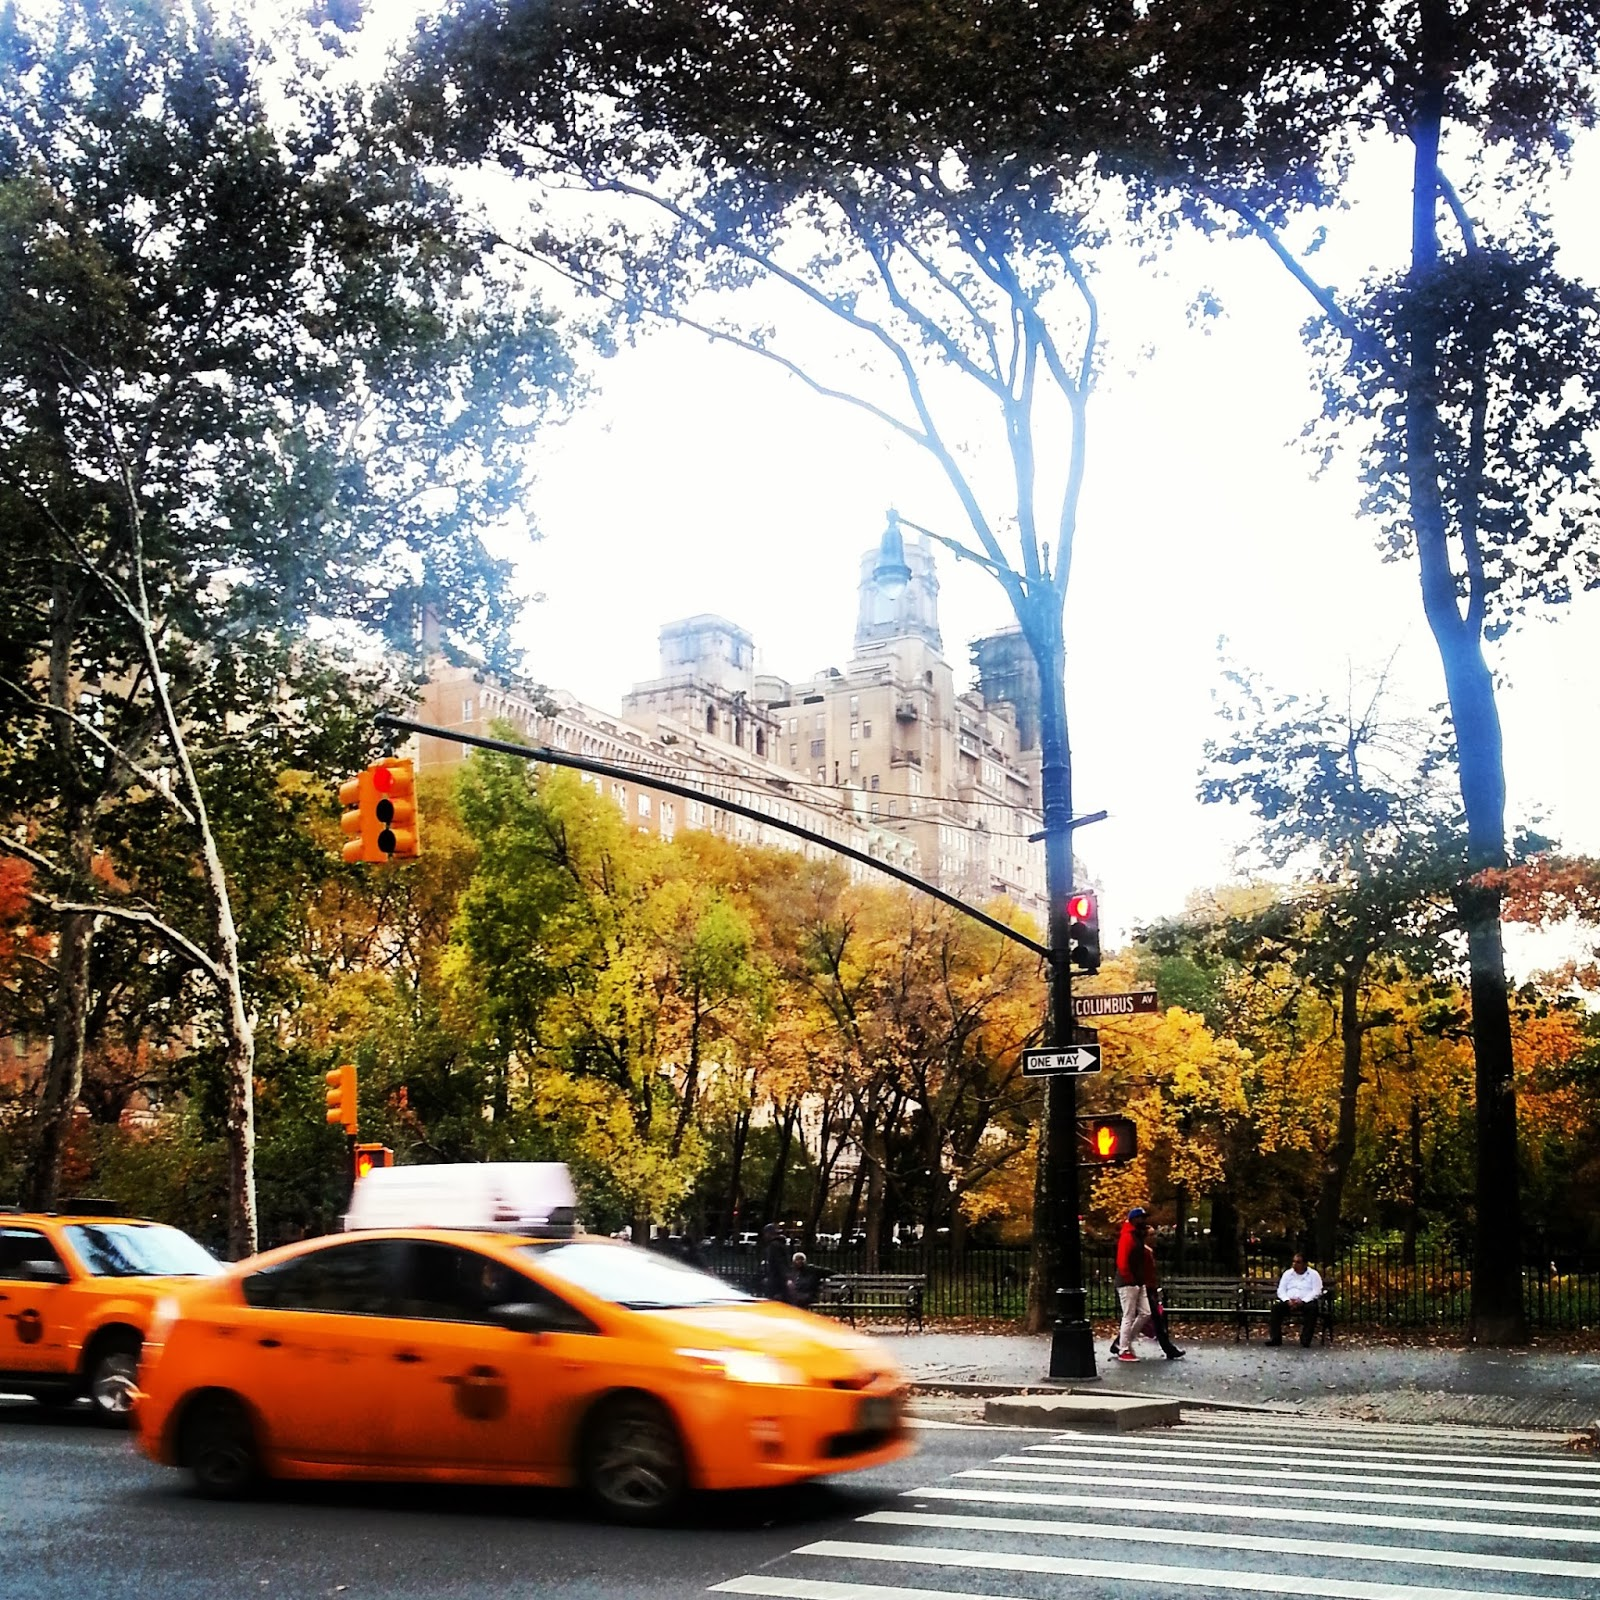 Upper West Side (UWS) + American Museum of Natural History |  The rosy glow of an autumn dusk  |  http://afeatherynest.blogspot.com